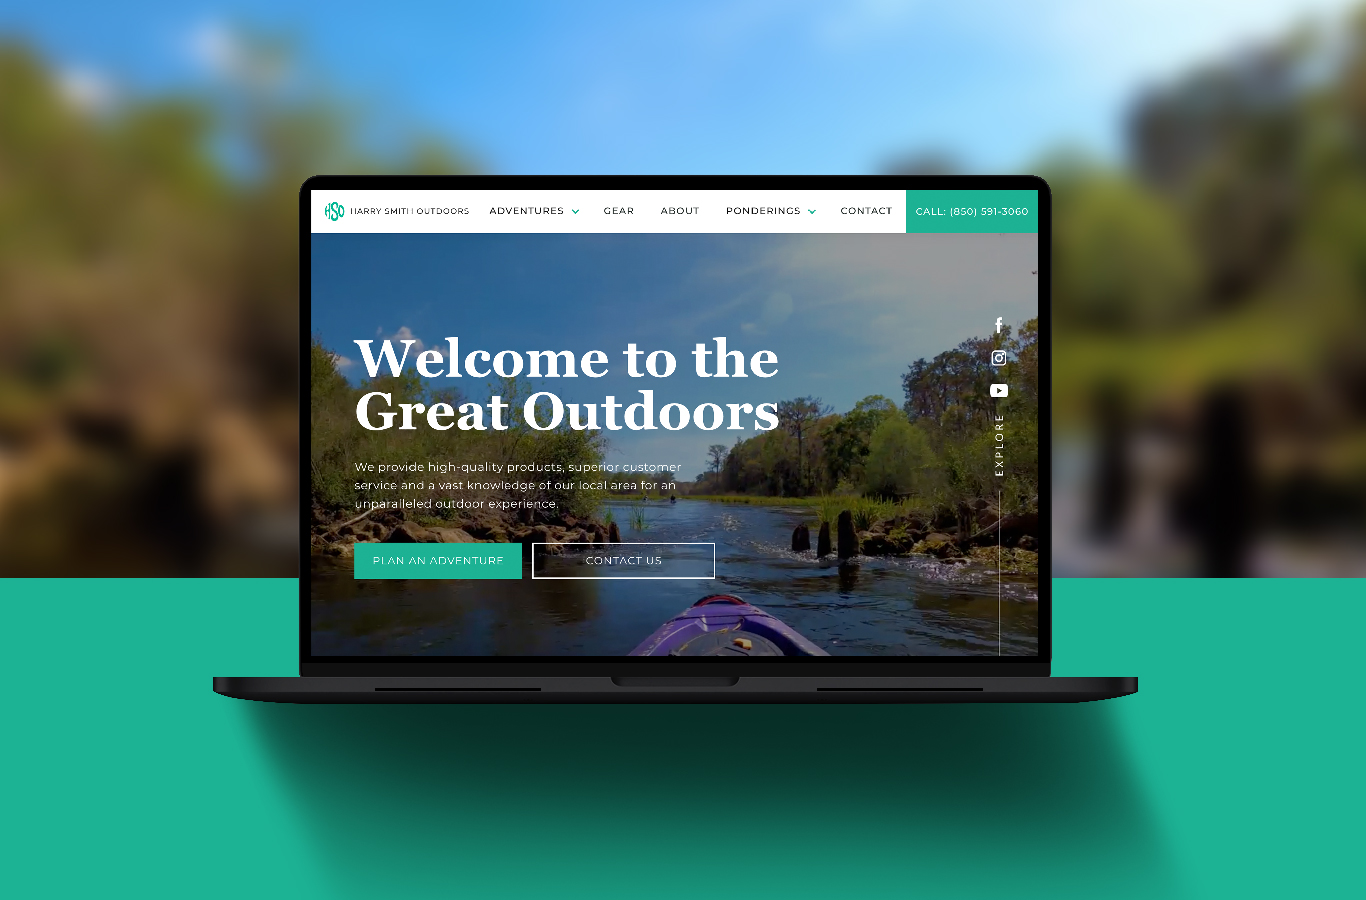 Harry Smith Outdoors website design